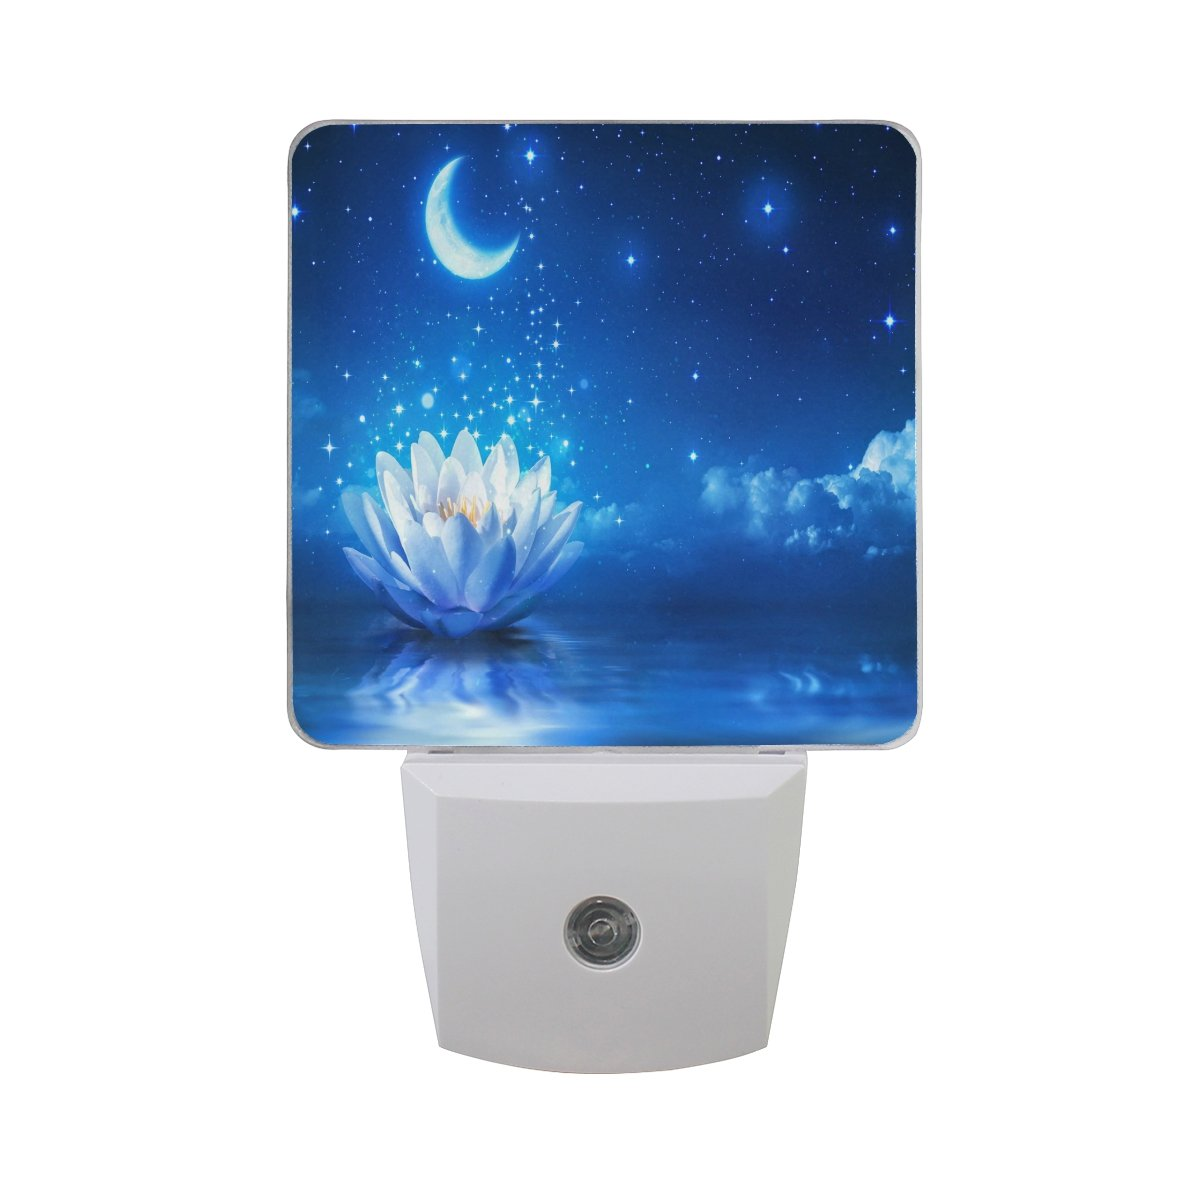 AlazaフローラルフラワーWaterlily Starry LED Night Light Dusk to Dawnセンサープラグin Night Home Decorデスクランプfor Adult B07BVD5S55 13554